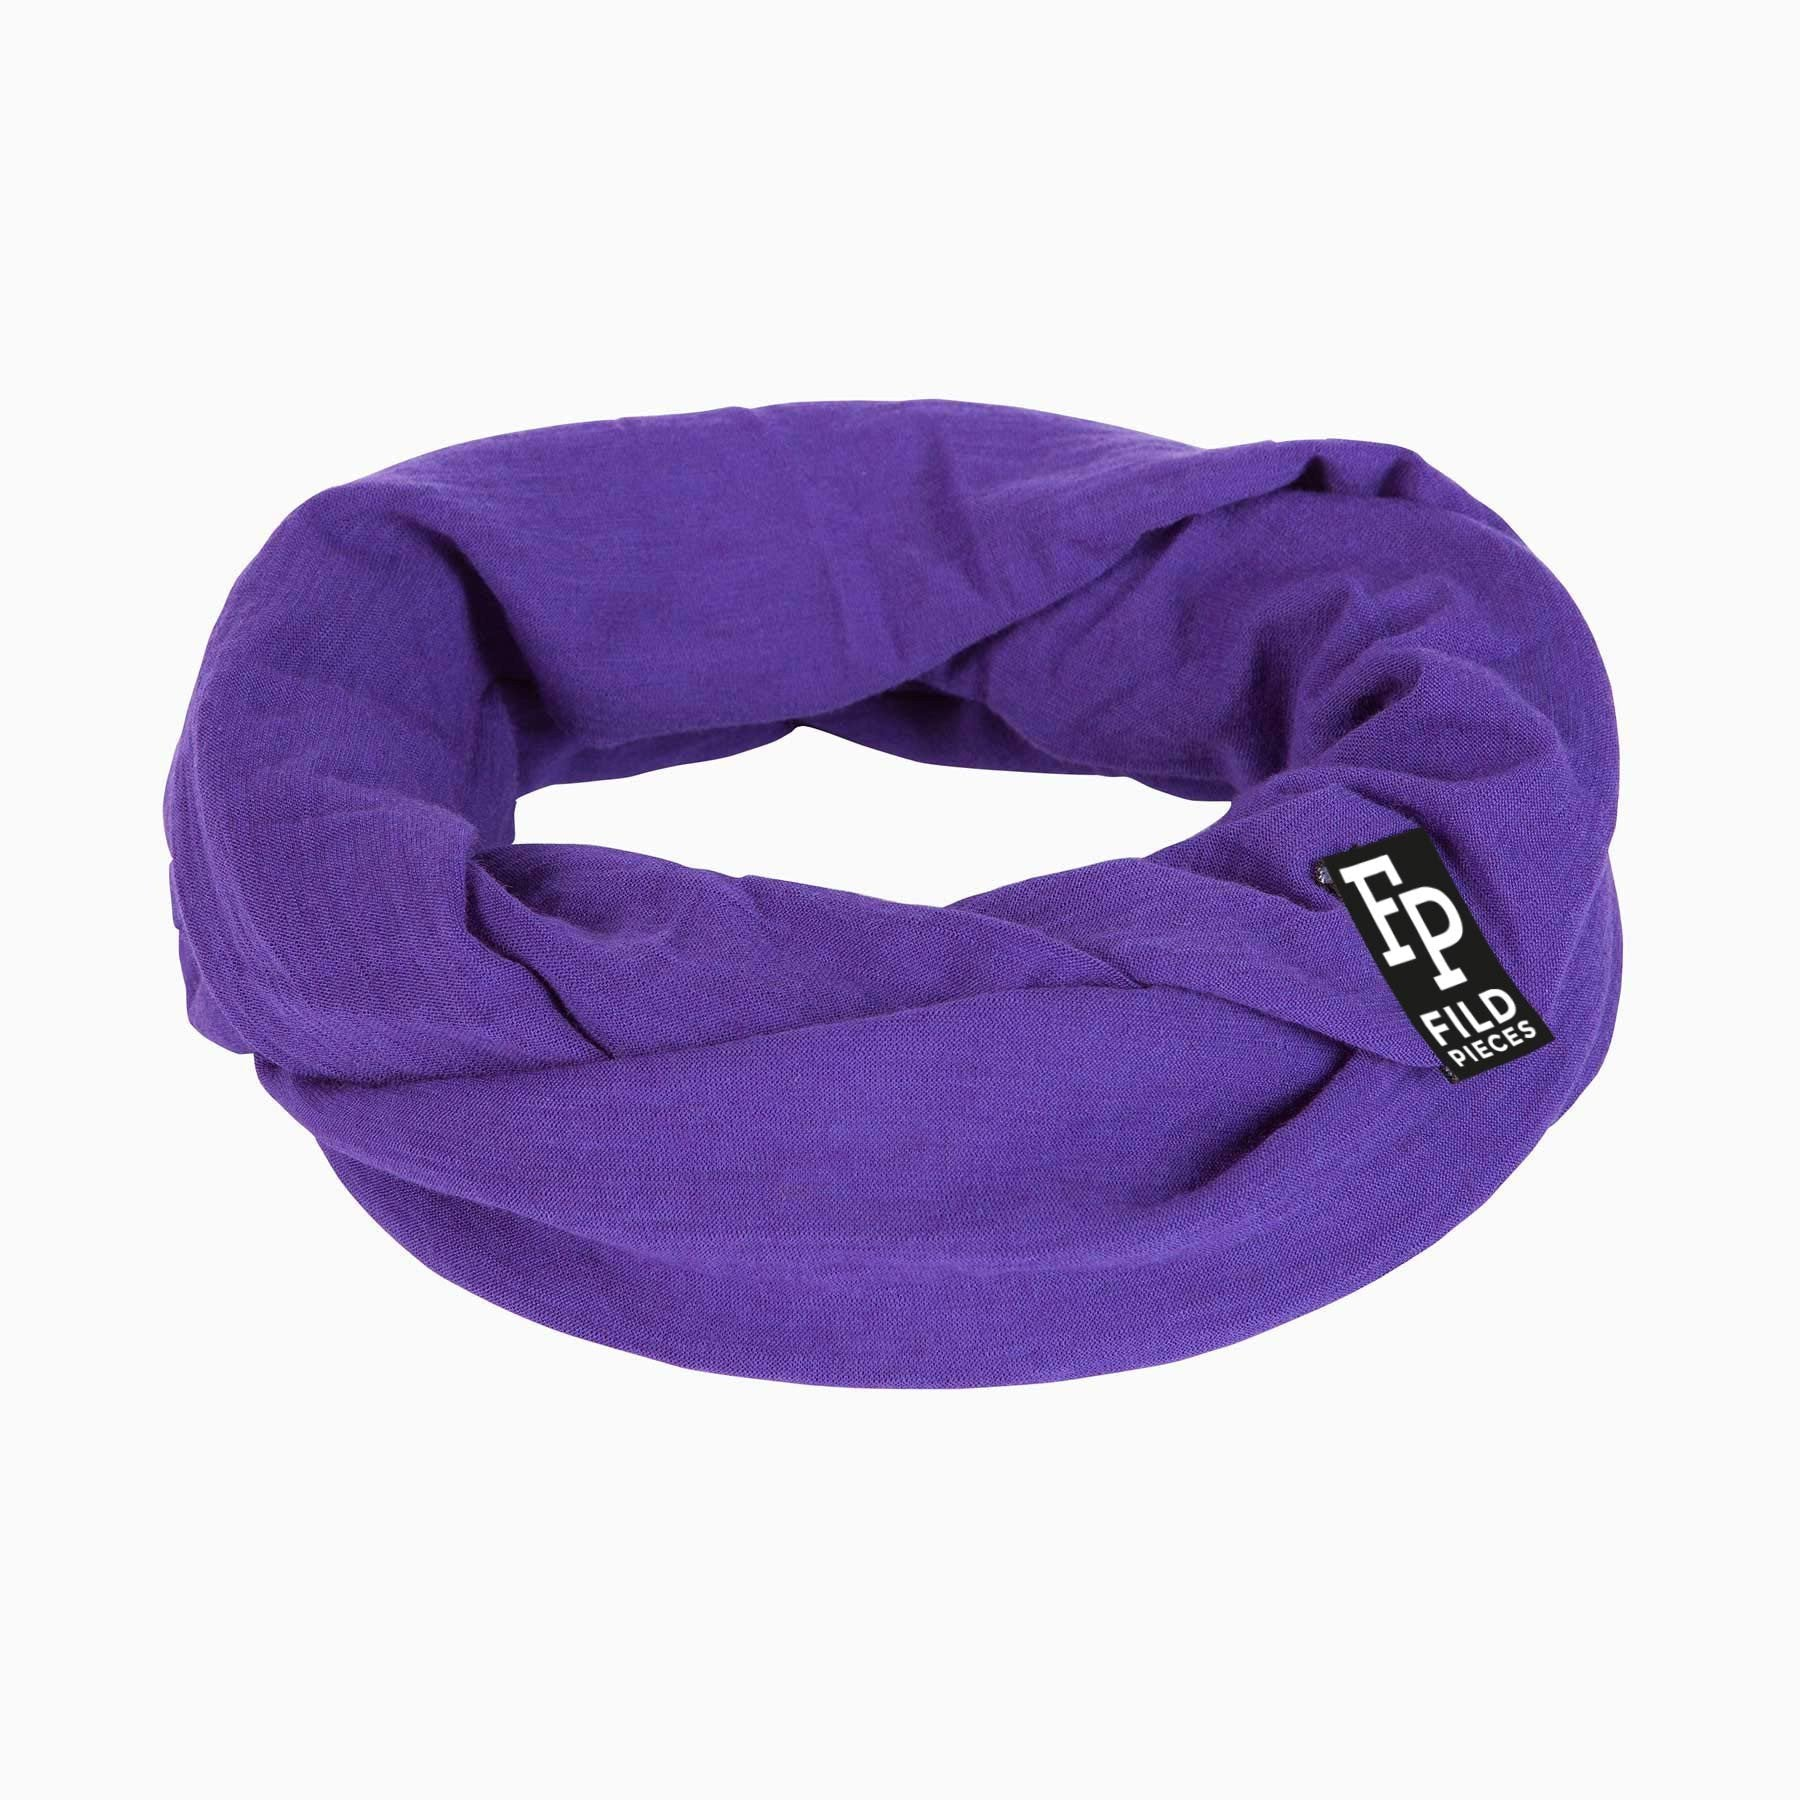 Tjorven Snood merino wool scarf purple